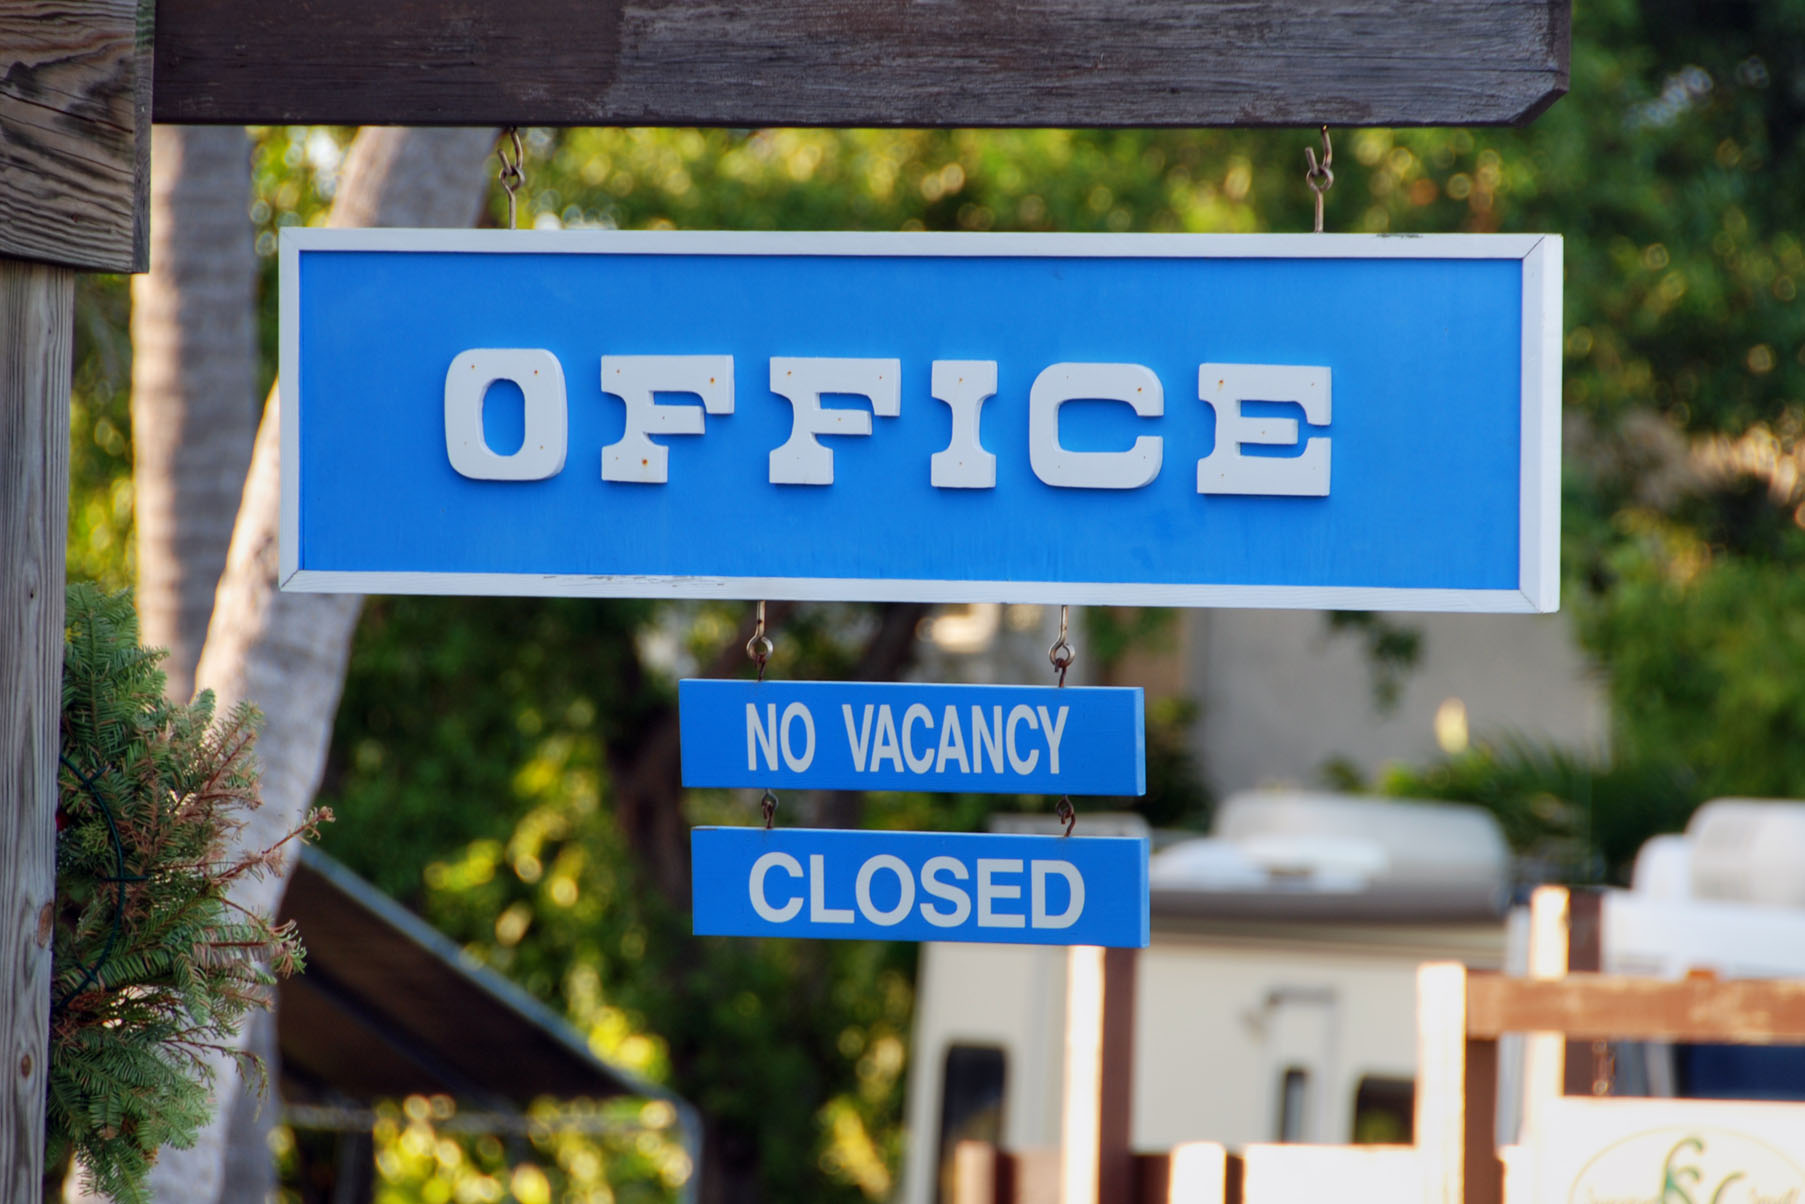 No vacancy, islamorada, florda, january photo